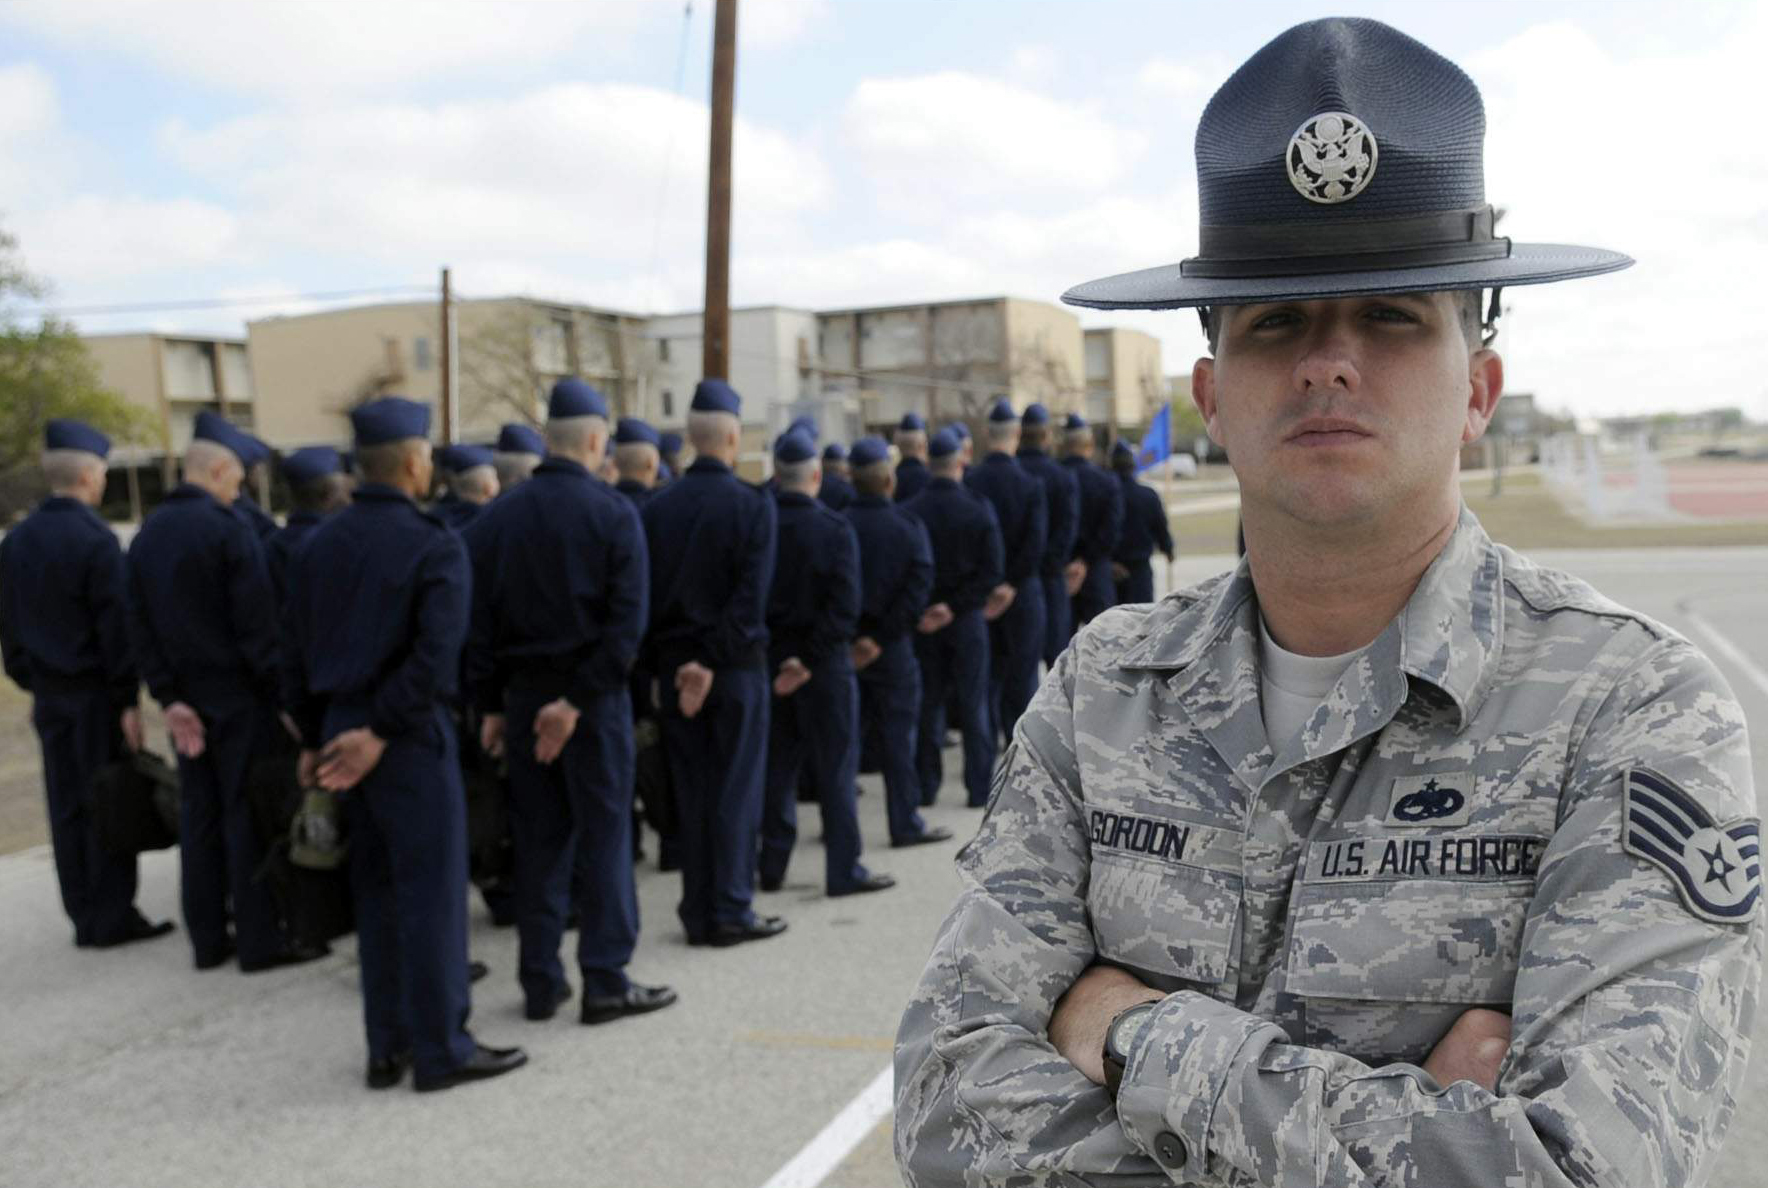 United States Air Force Basic Military Training Military